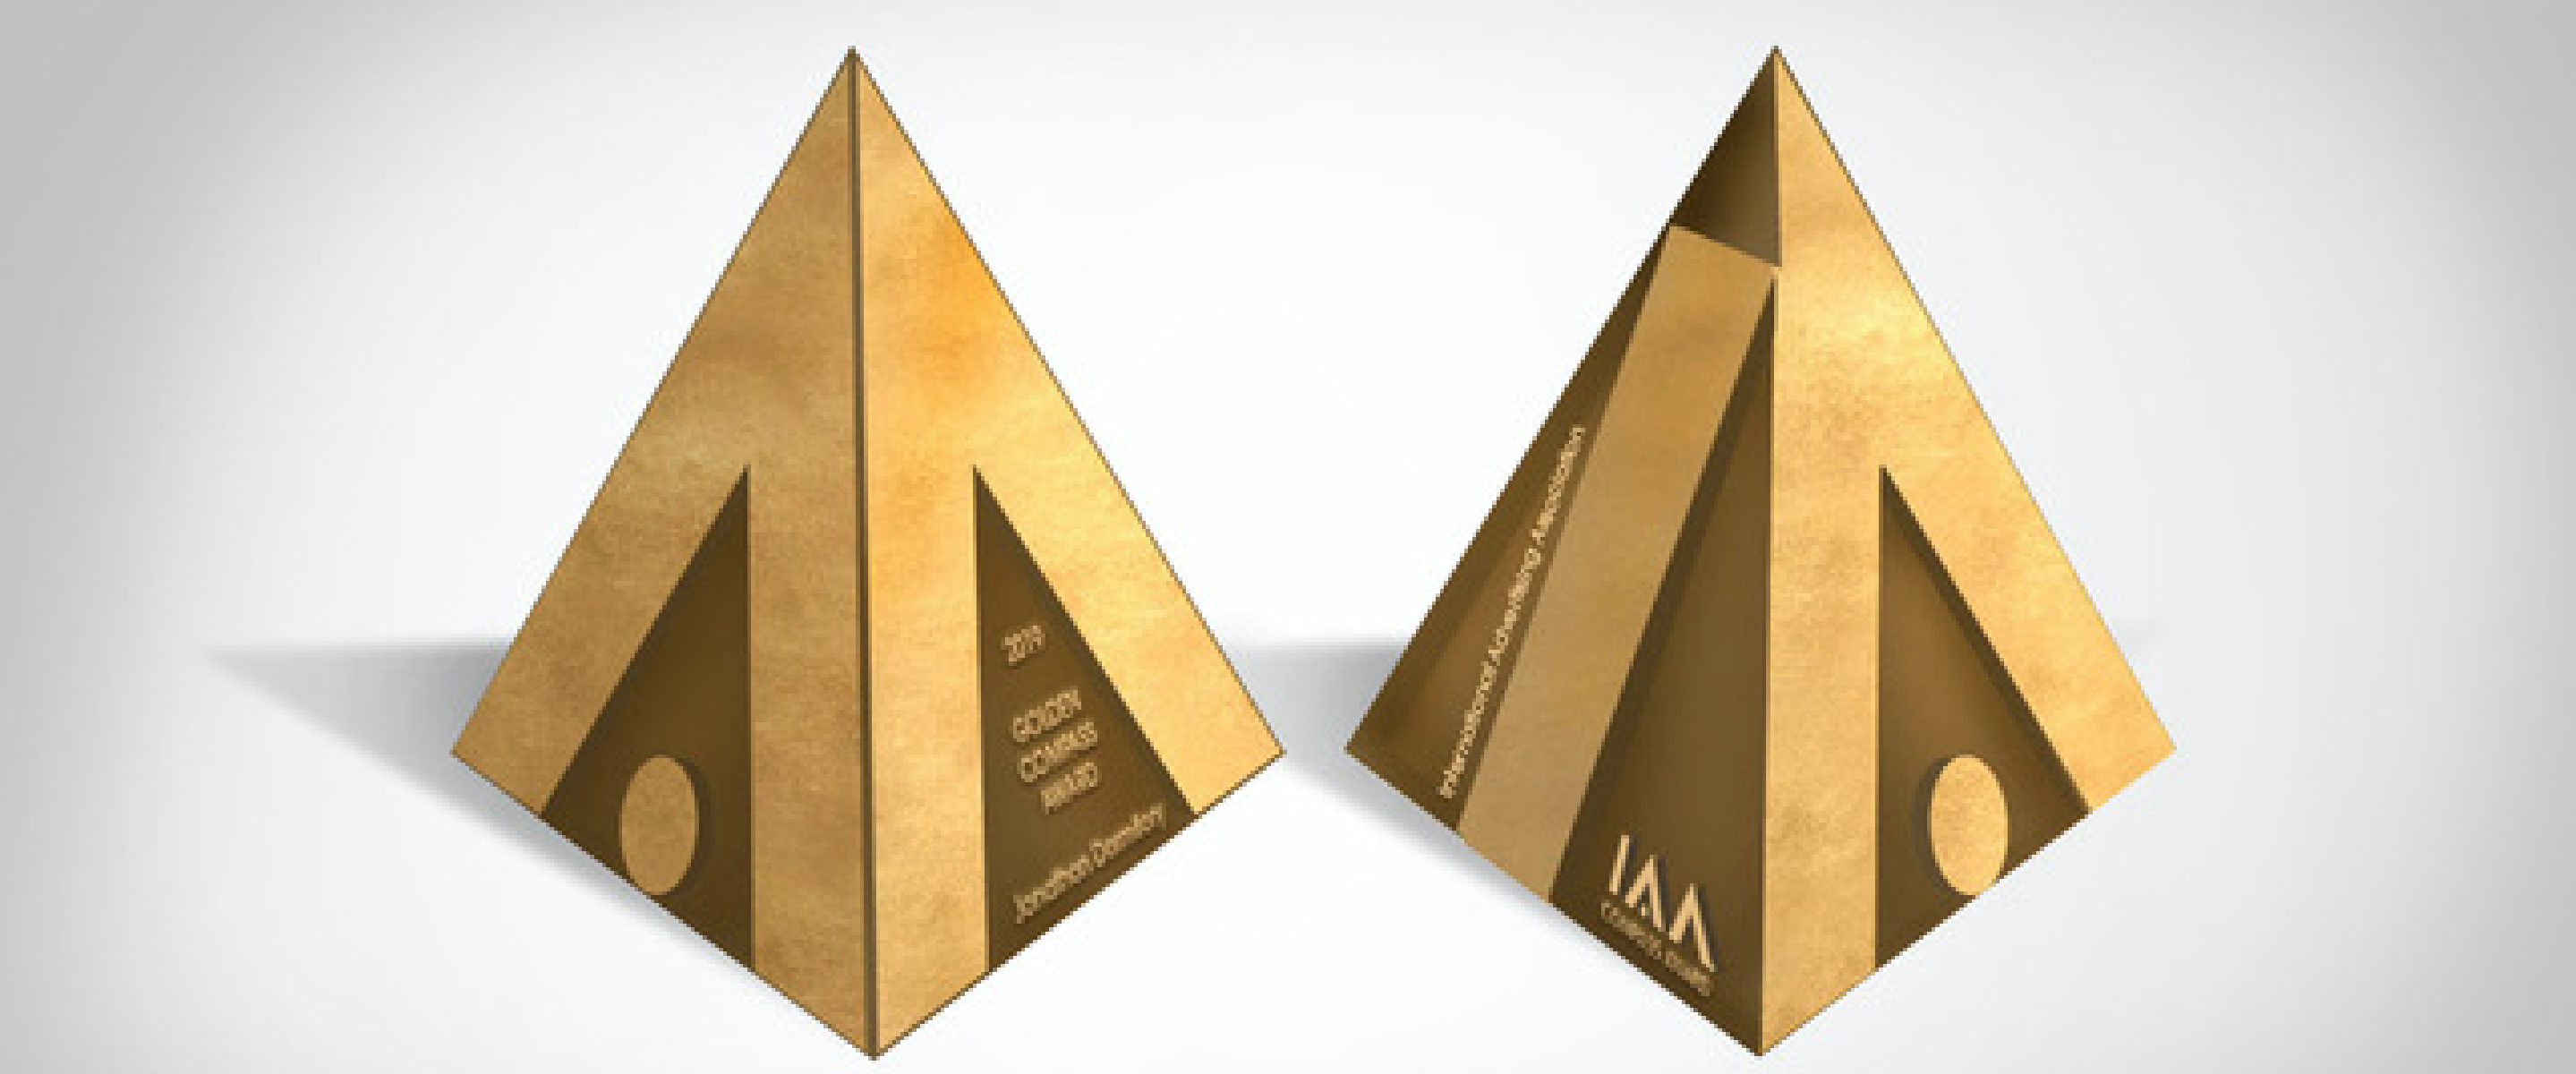 IAA Compass Awards Launch With Iconic New Identity